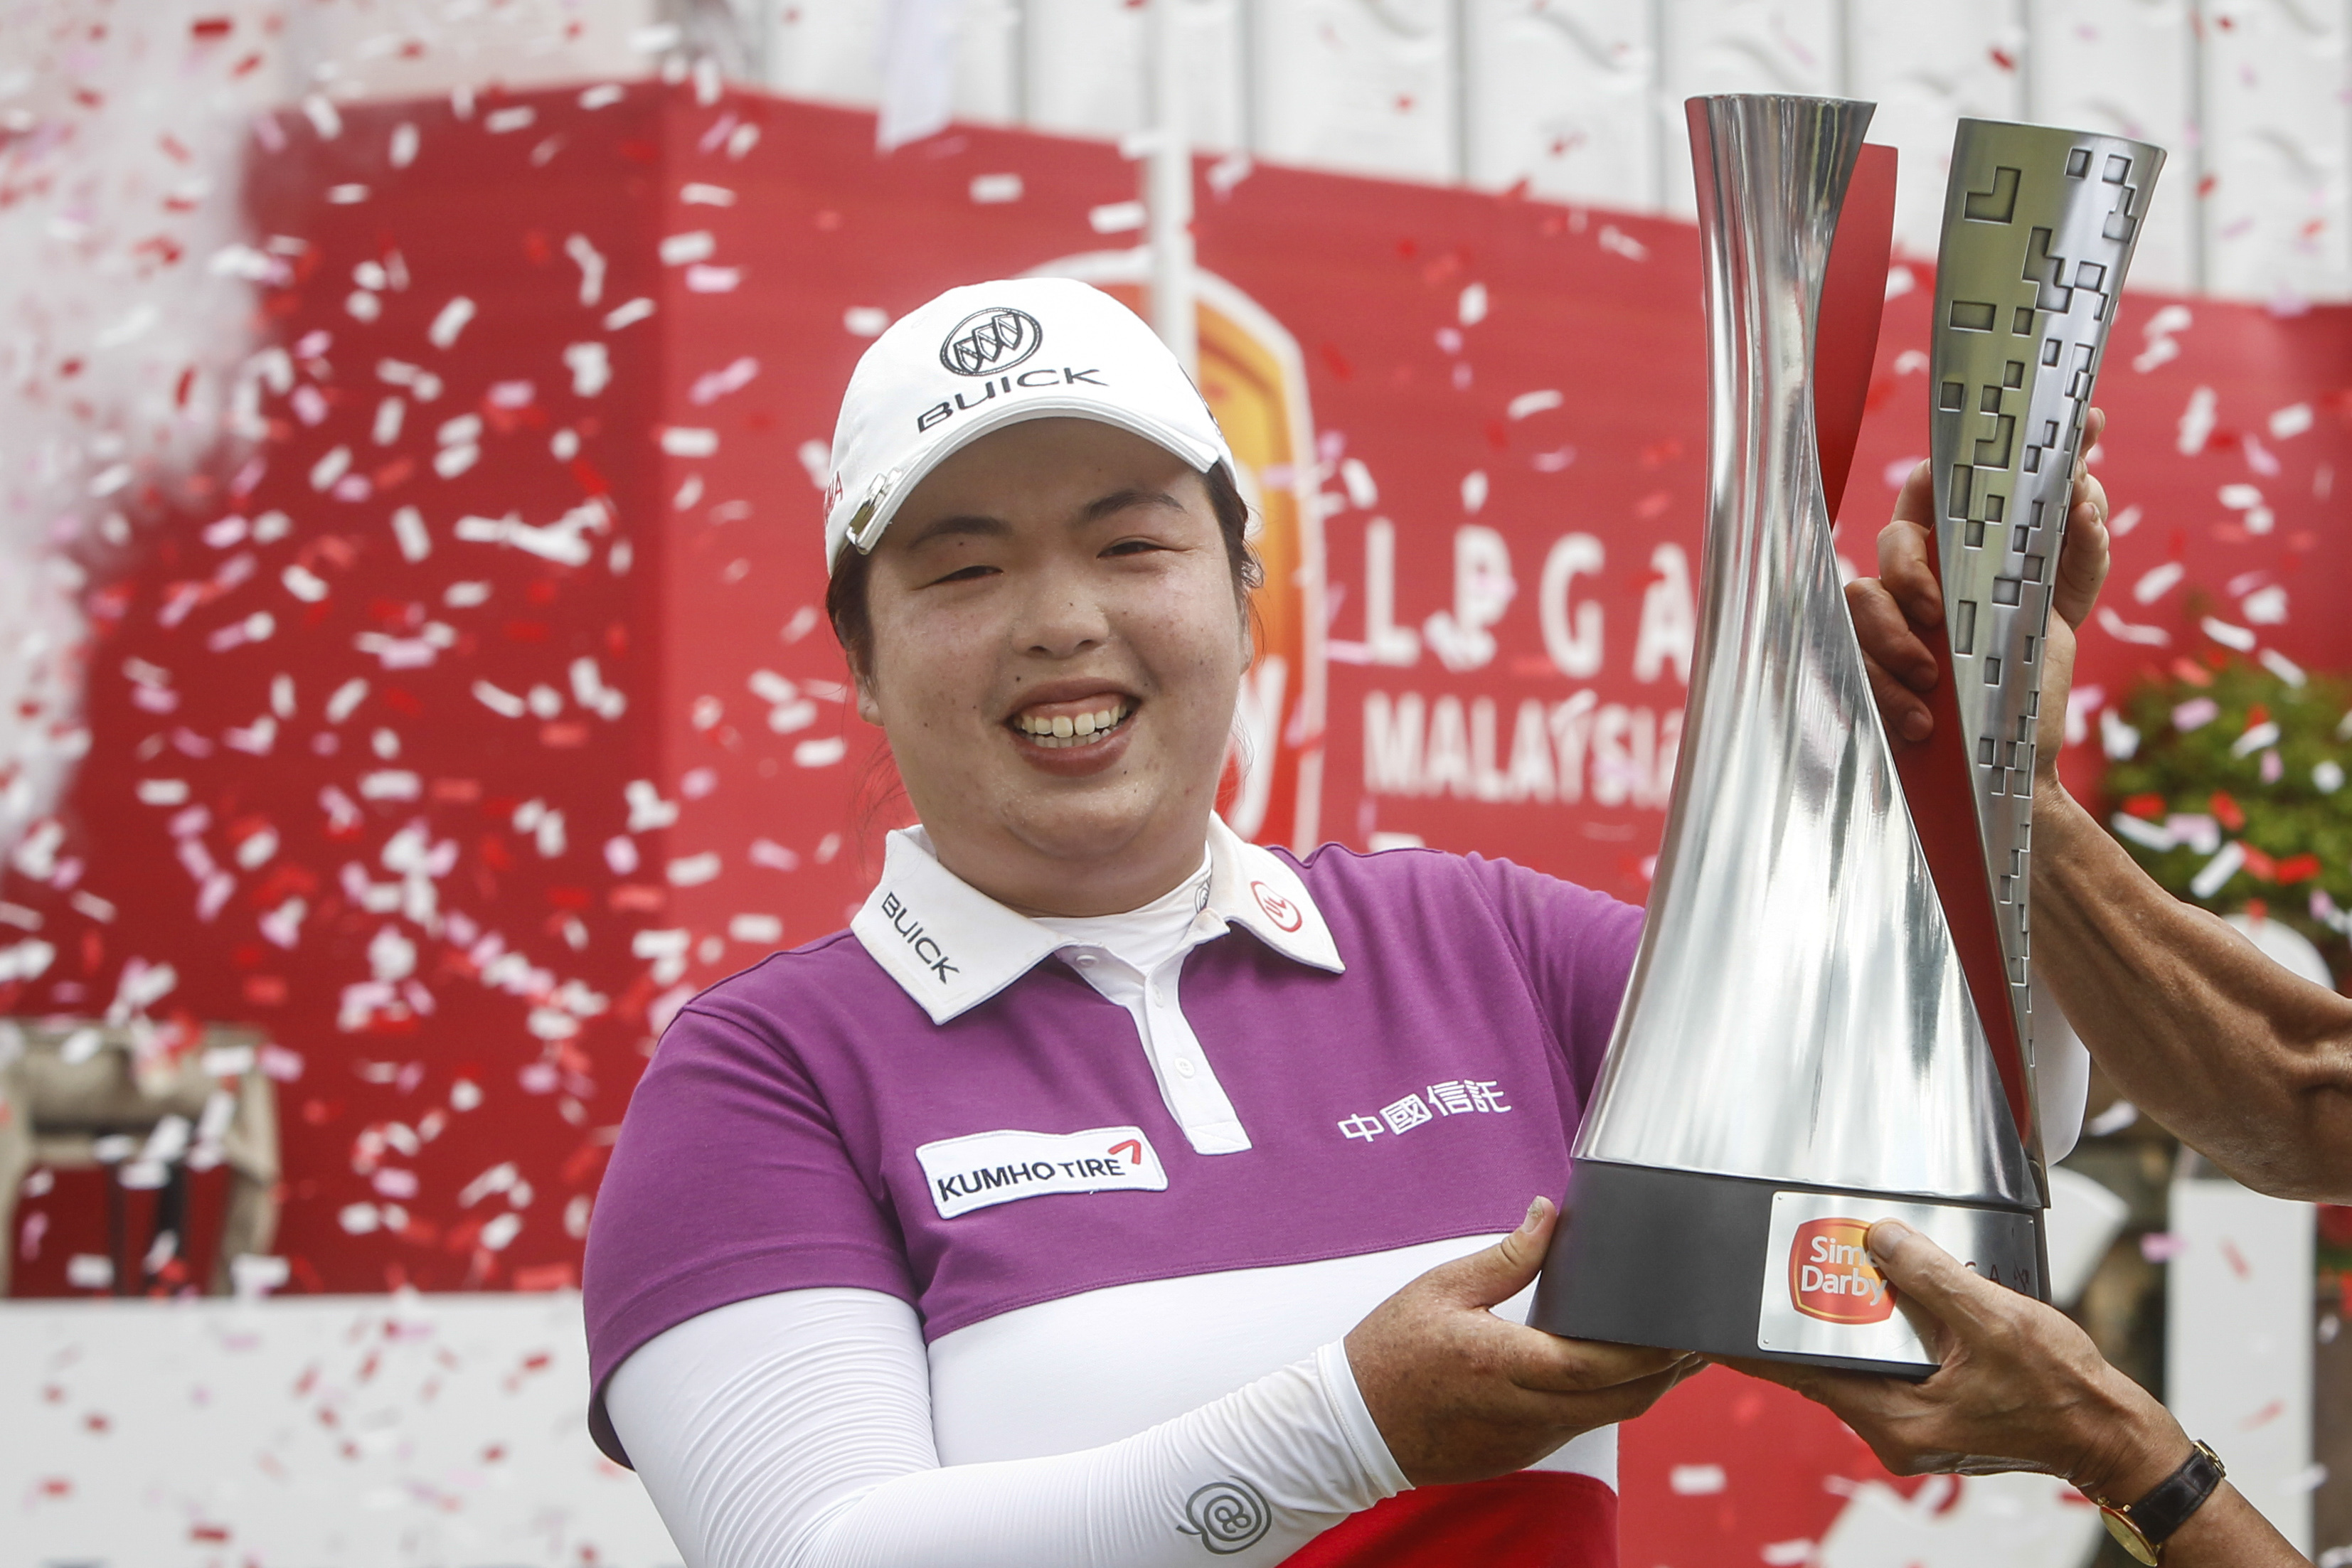 Shanshan Feng of China holds up her trophy after winning the LPGA golf tournament at Tournament Players Club (TPC) in Kuala Lumpur, Malaysia, Sunday, Oct. 30, 2016.